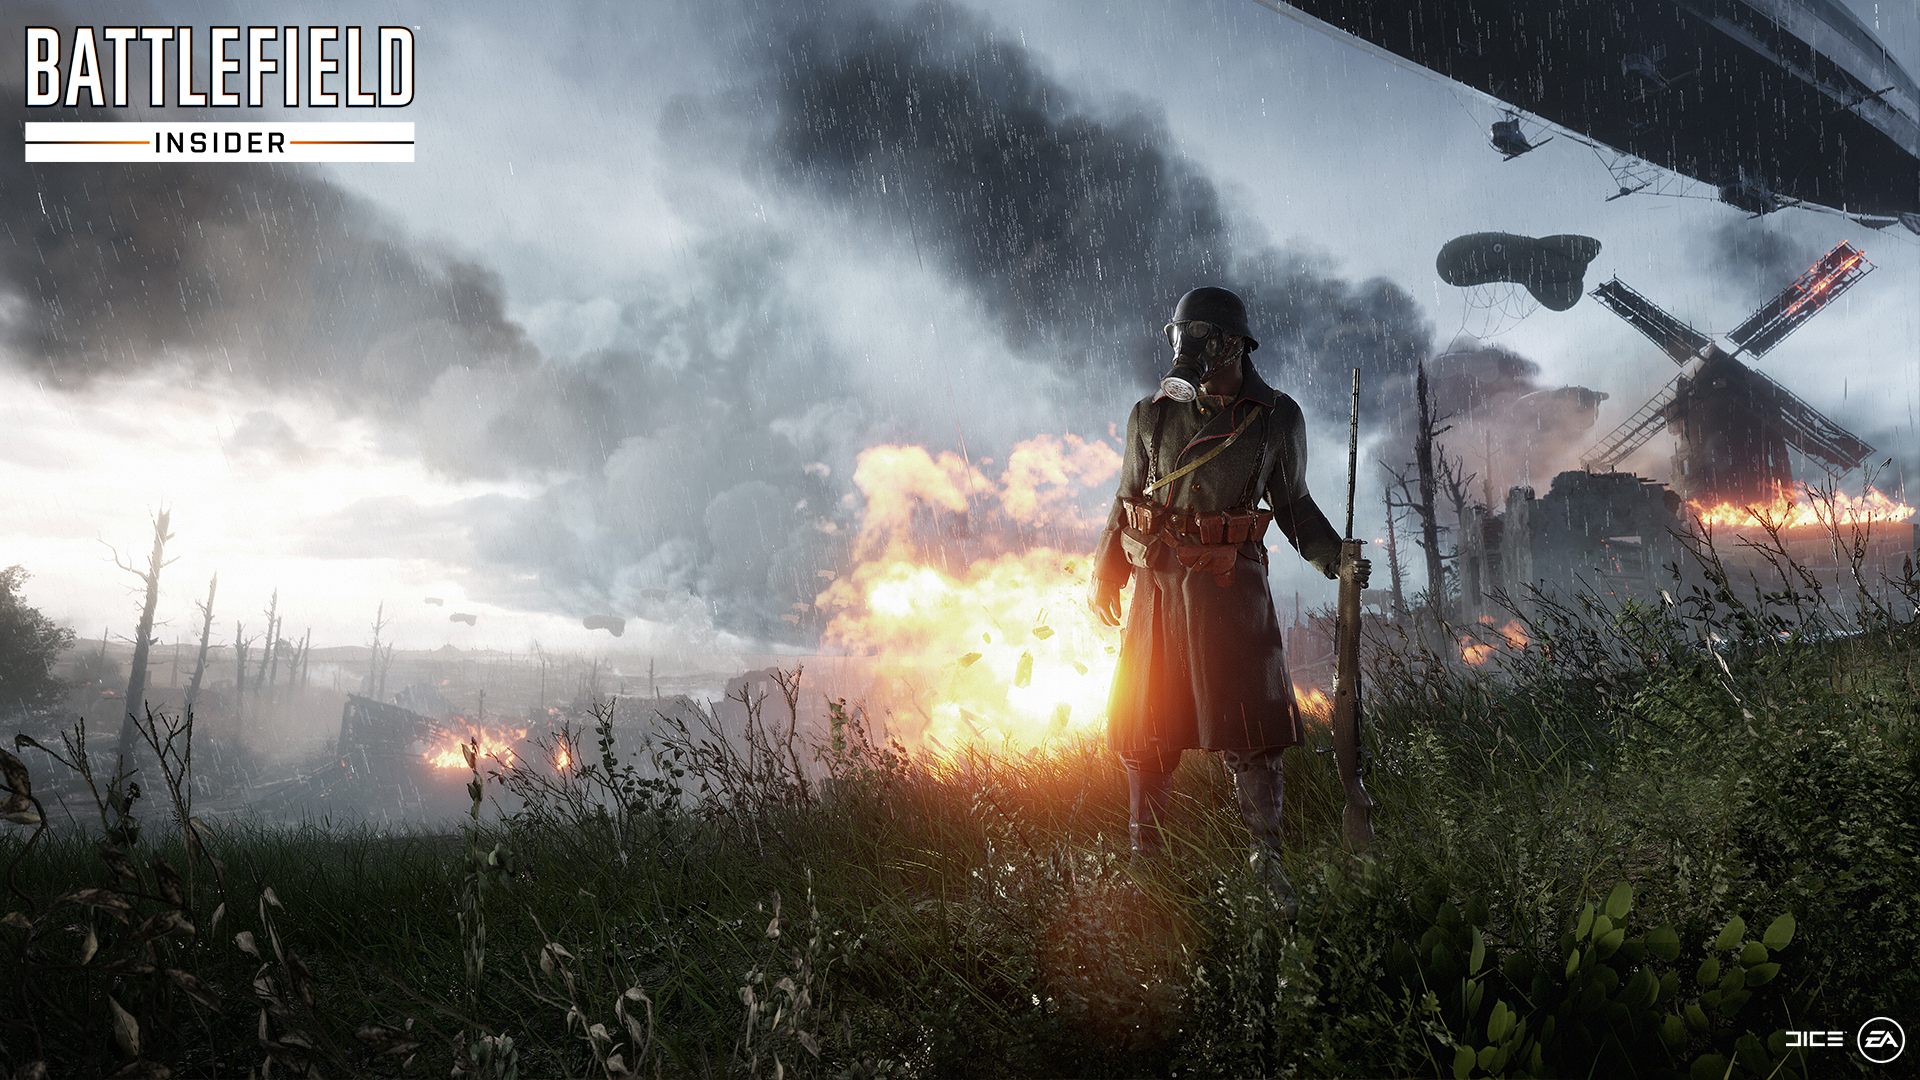 http://newsletters-cdn.ea.com/2016/bf1/wallpaper/eaplay/bf1wp1920x1080eaplay.jpg